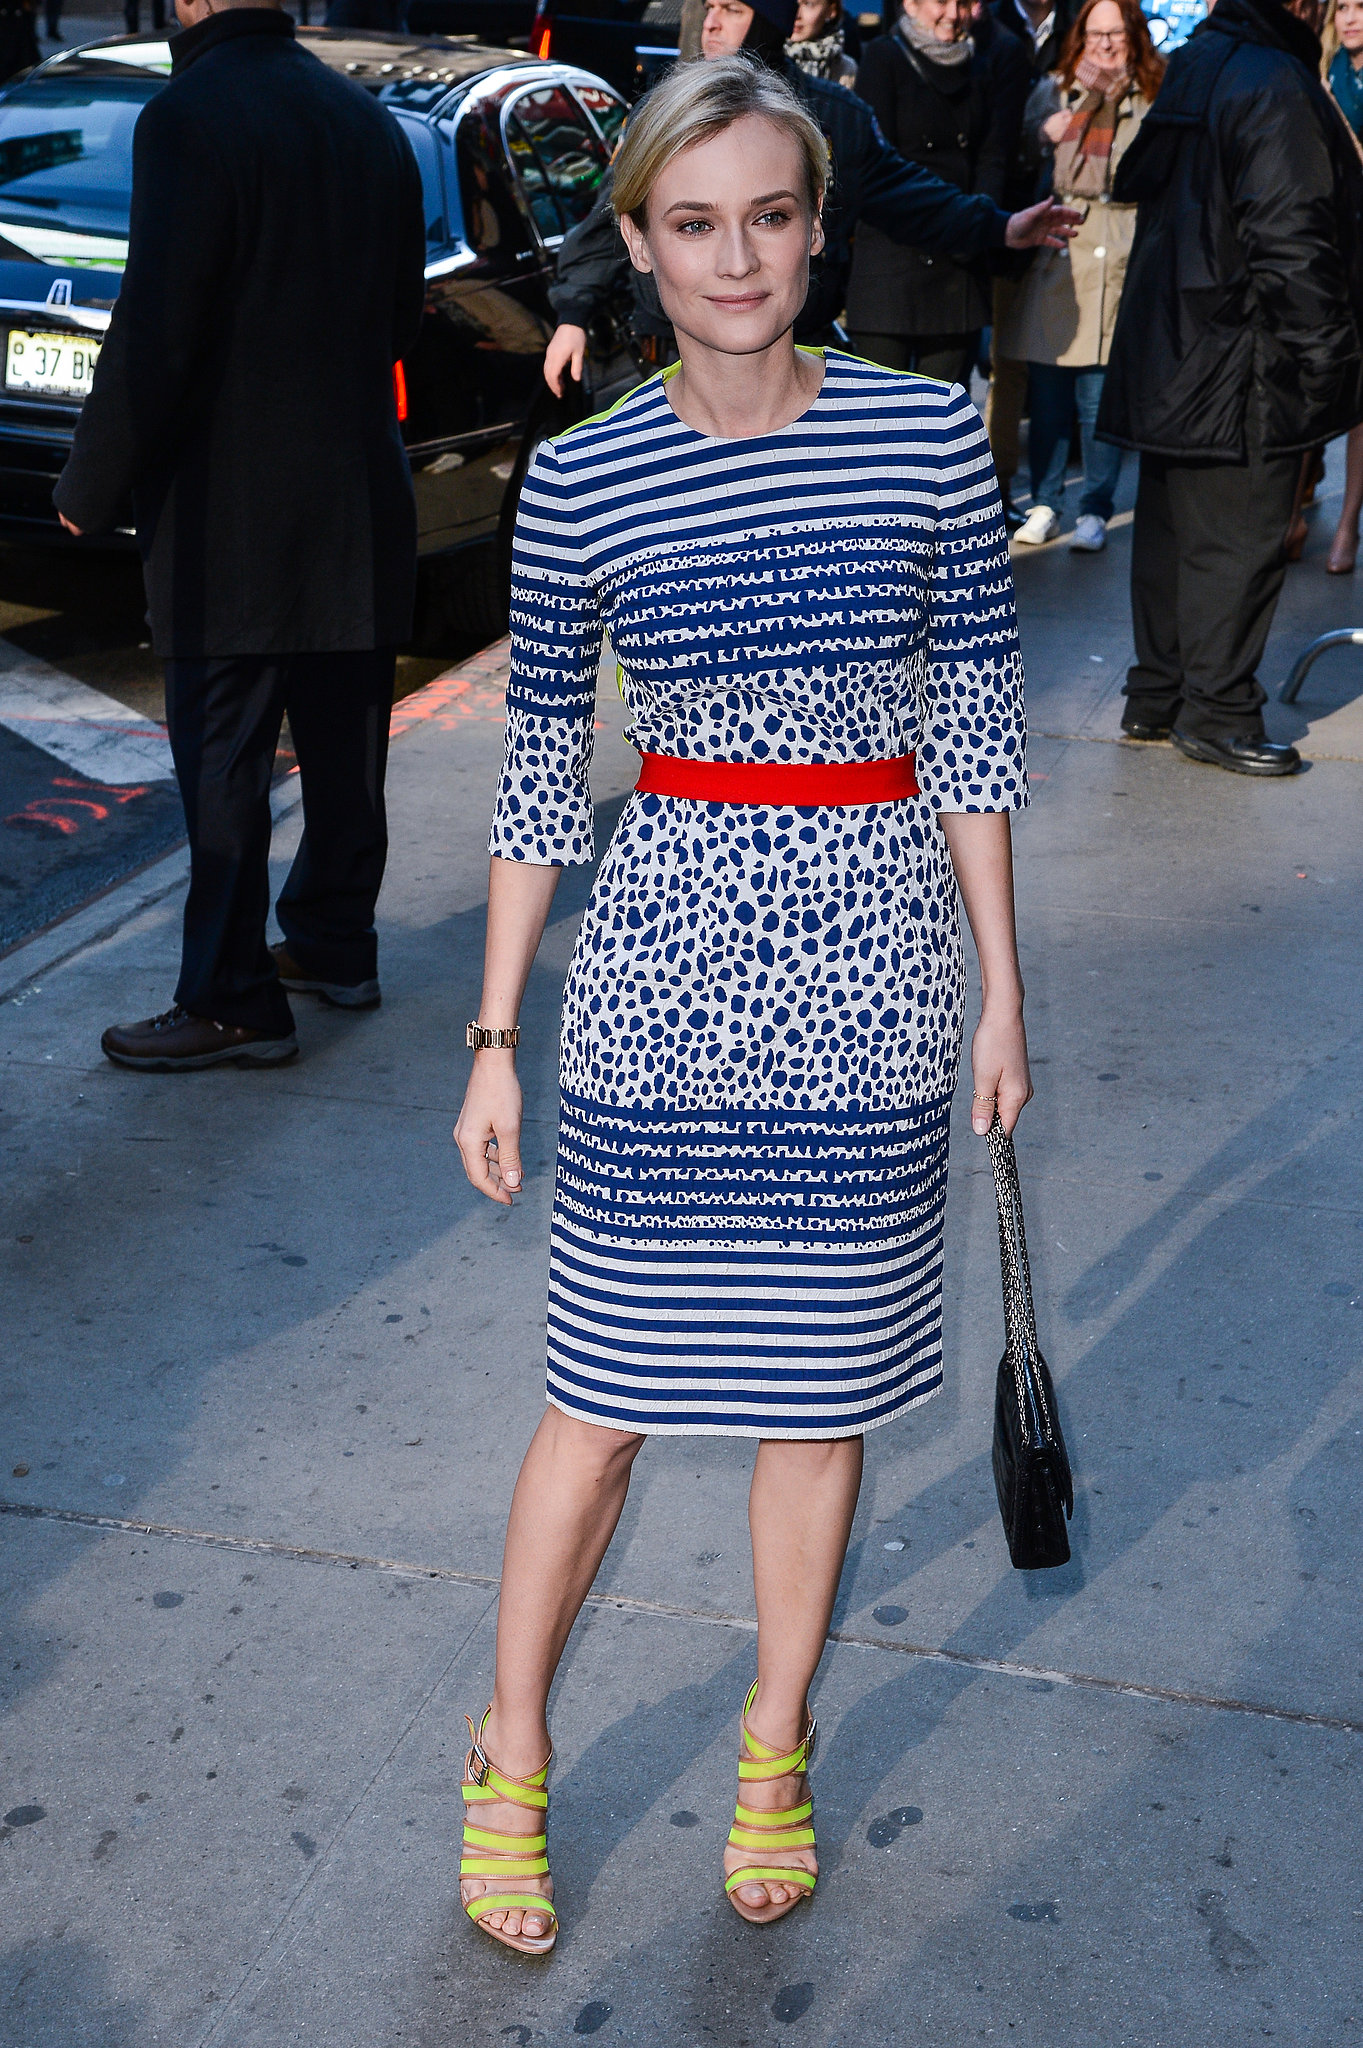 While leaving the Good Morning America studios, Kruger looked pristine in Preen, brightening the city streets with navy, red, and neon yellow.